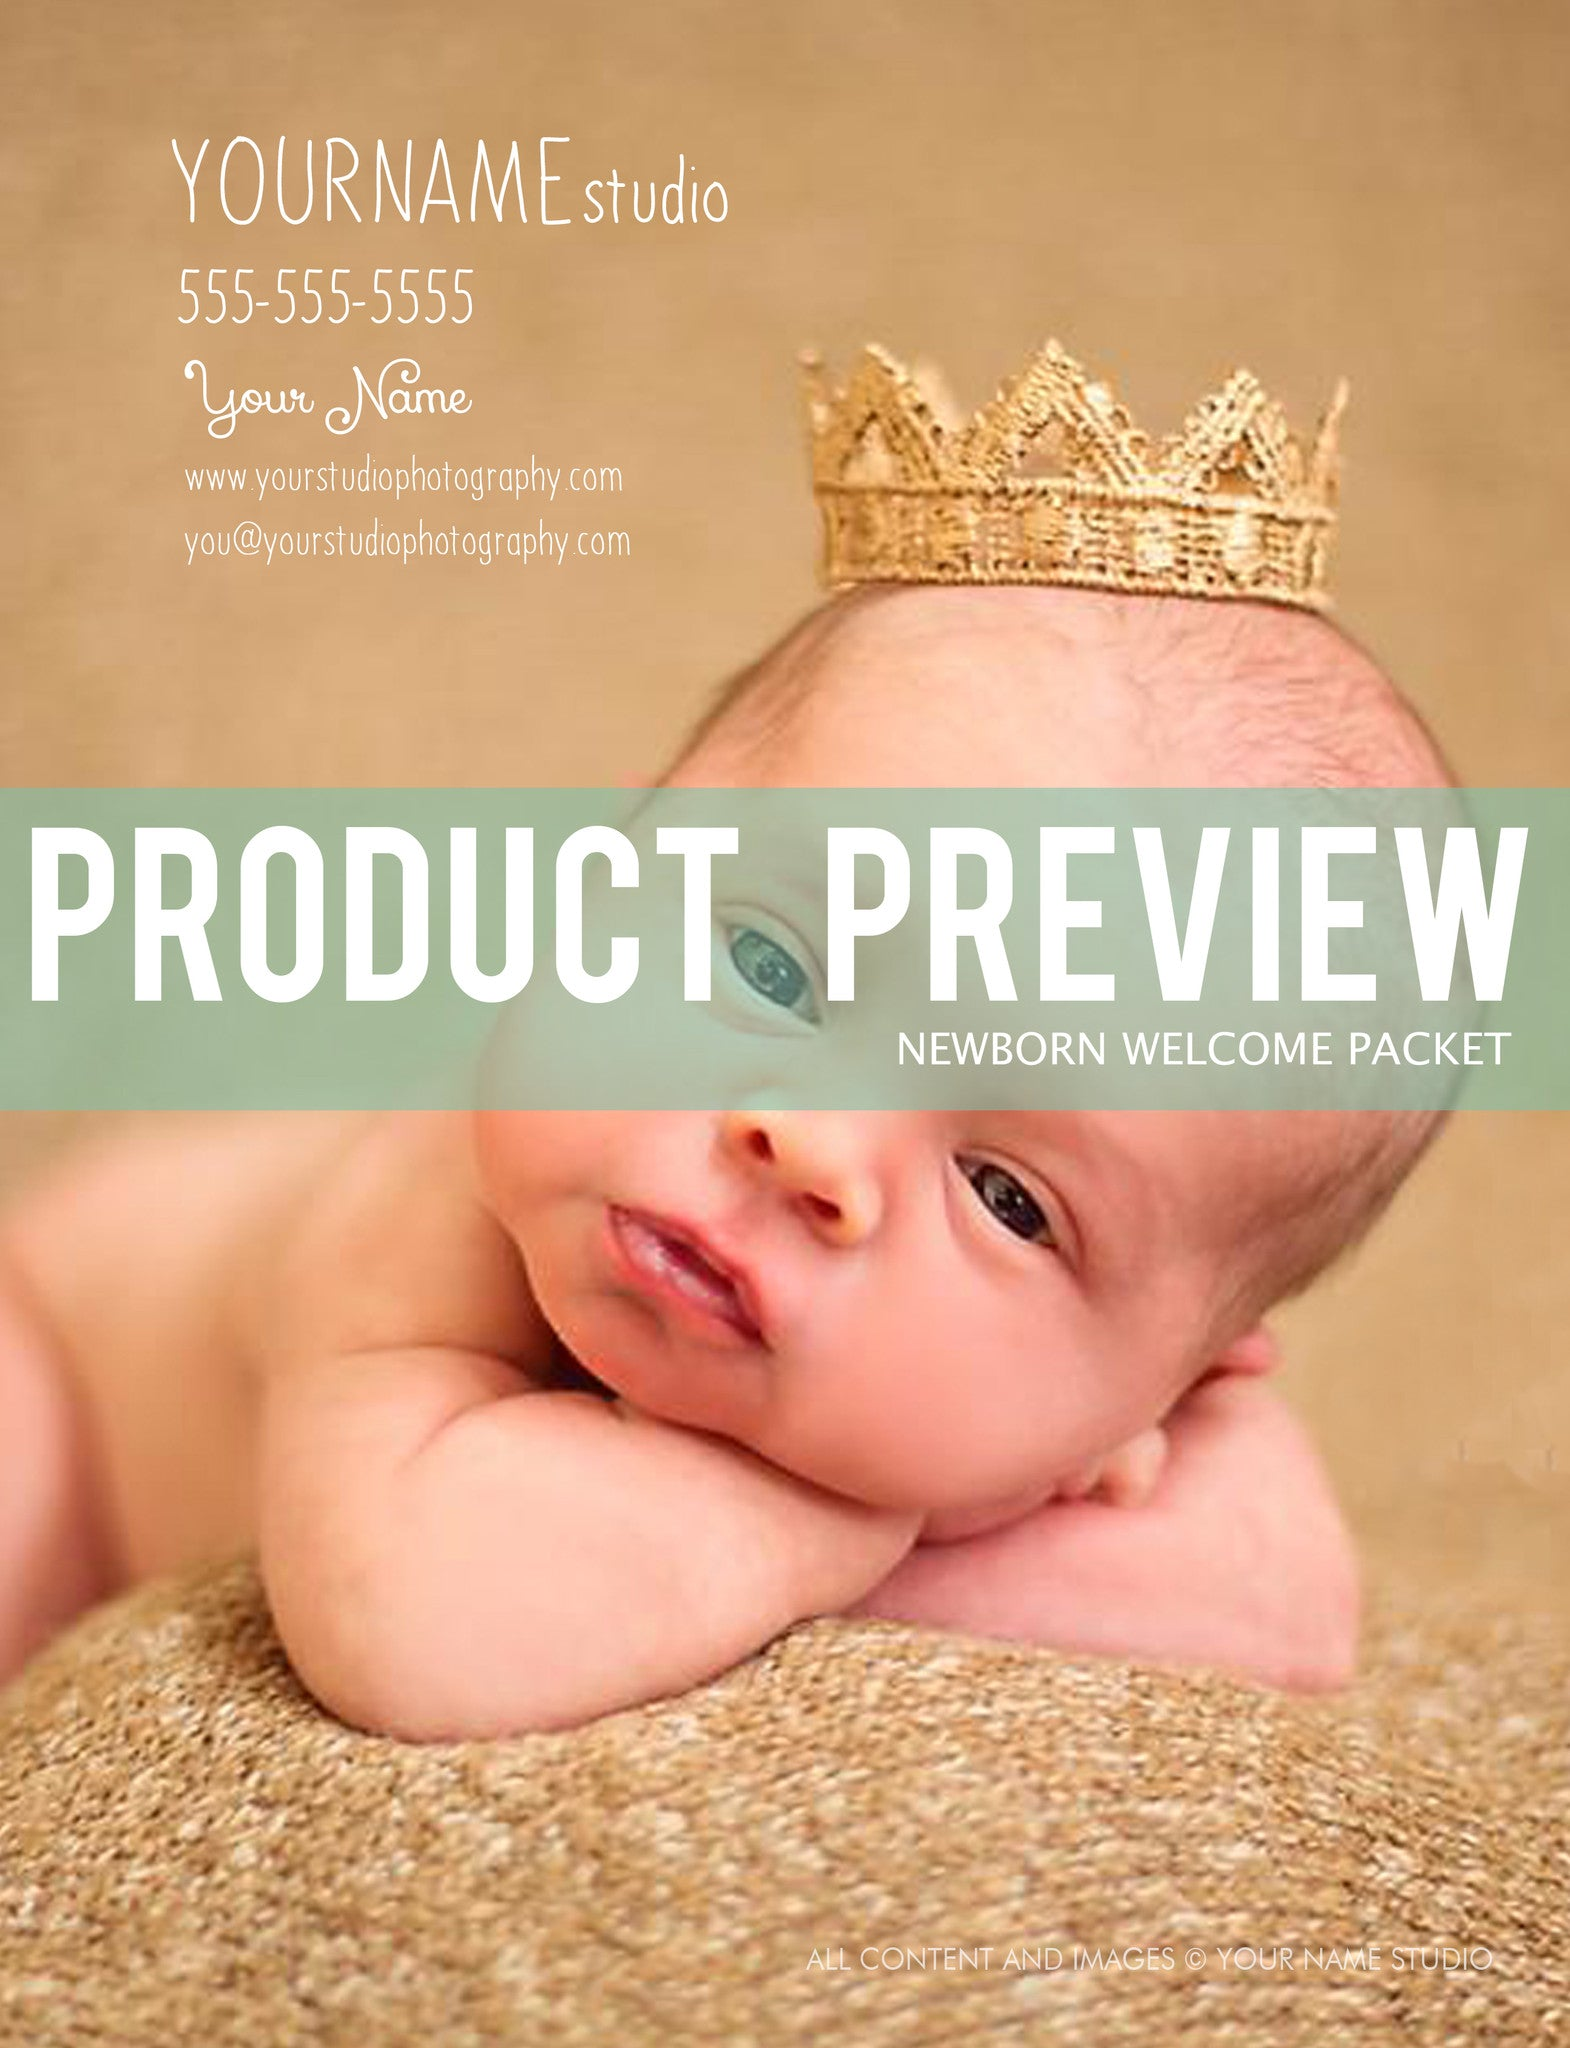 Newborn Magazine Welcome Packet Template {1st Edition} - BP4U Guides